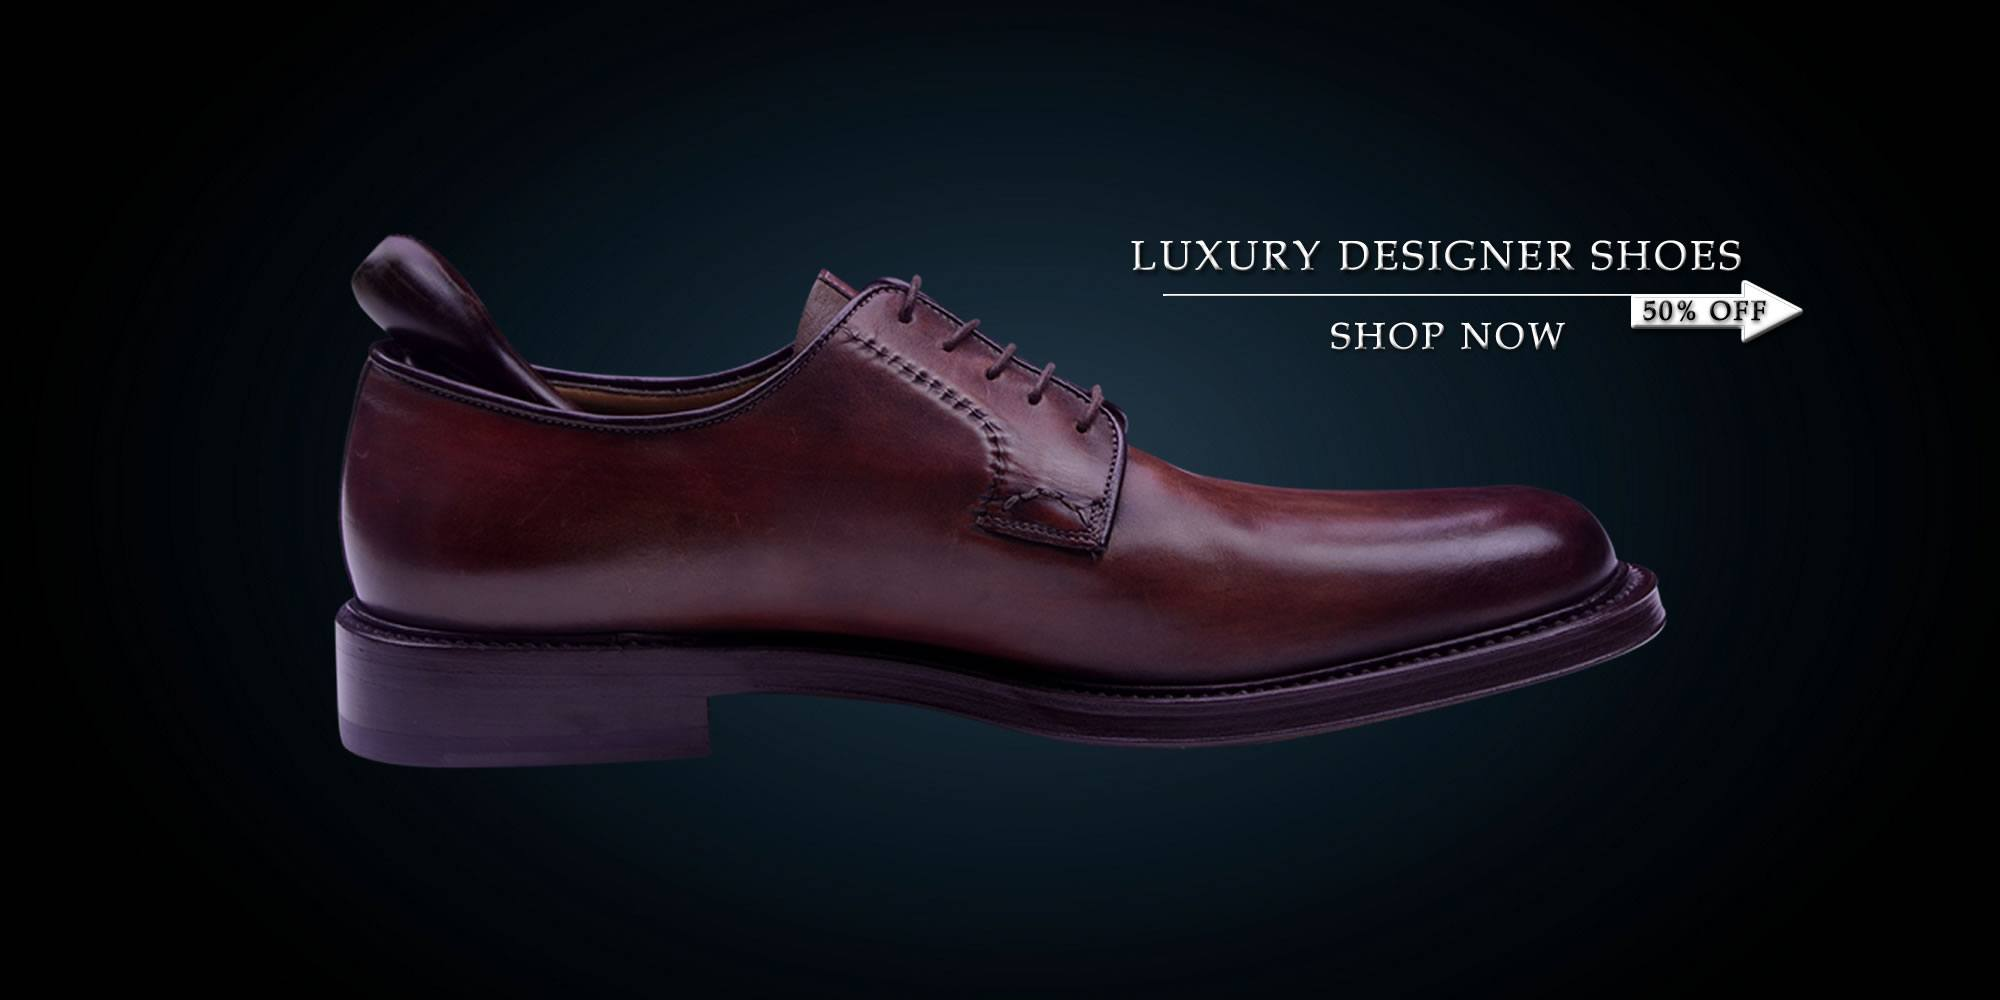 LUXURY DESIGNER SHOES ON SALE IN VANCOUVER | FASHION HUB